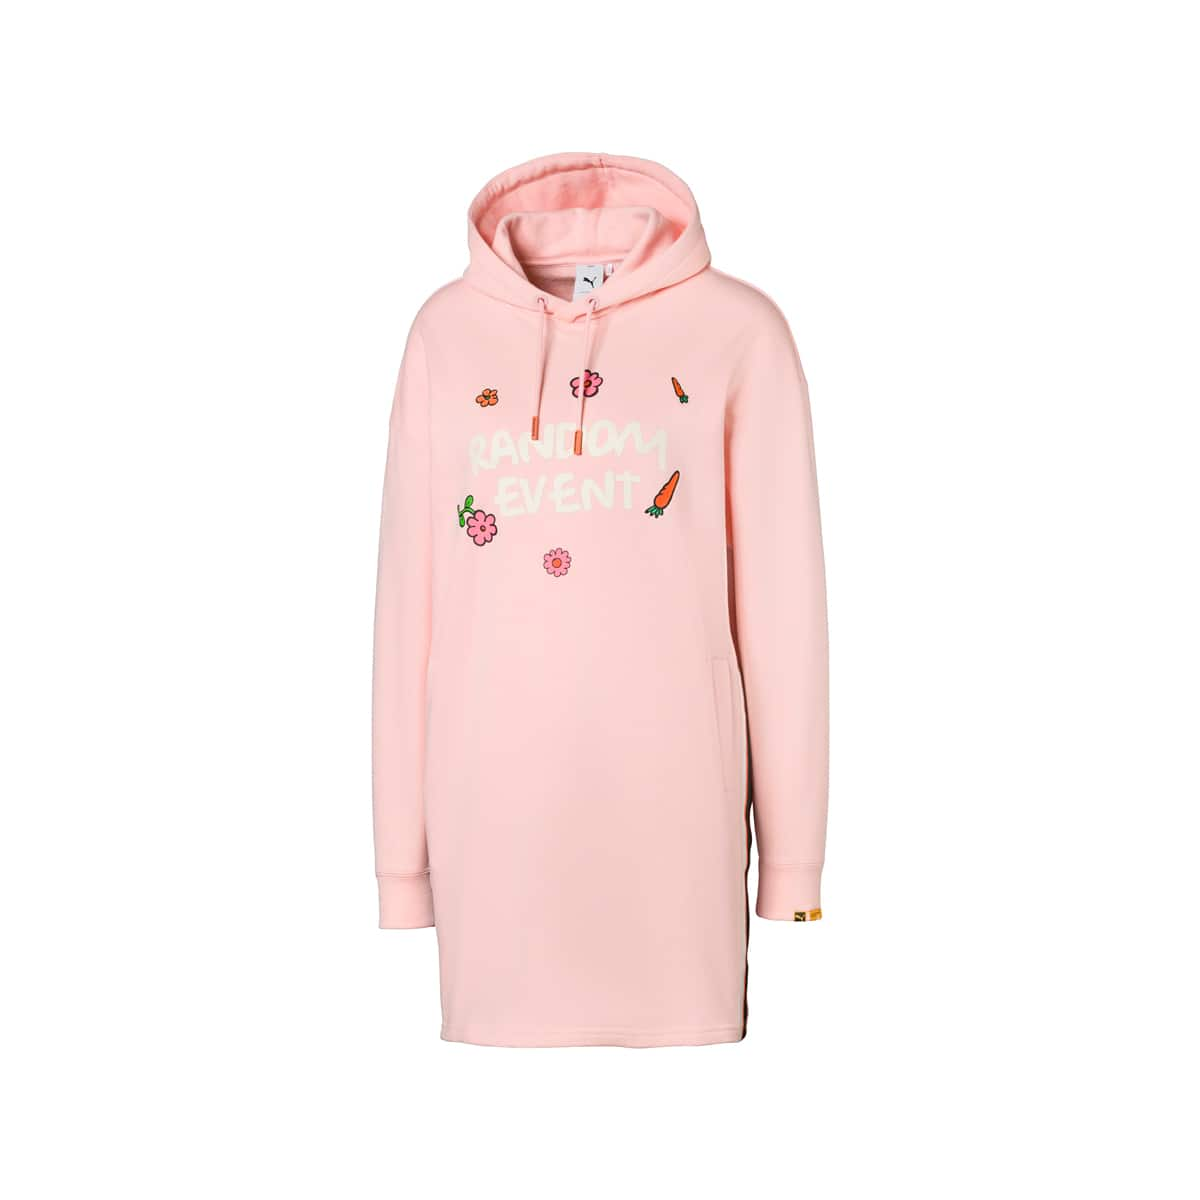 PUMA x RDET Hooded Dress GOSSAMER PINK 20SP-S_photo_large